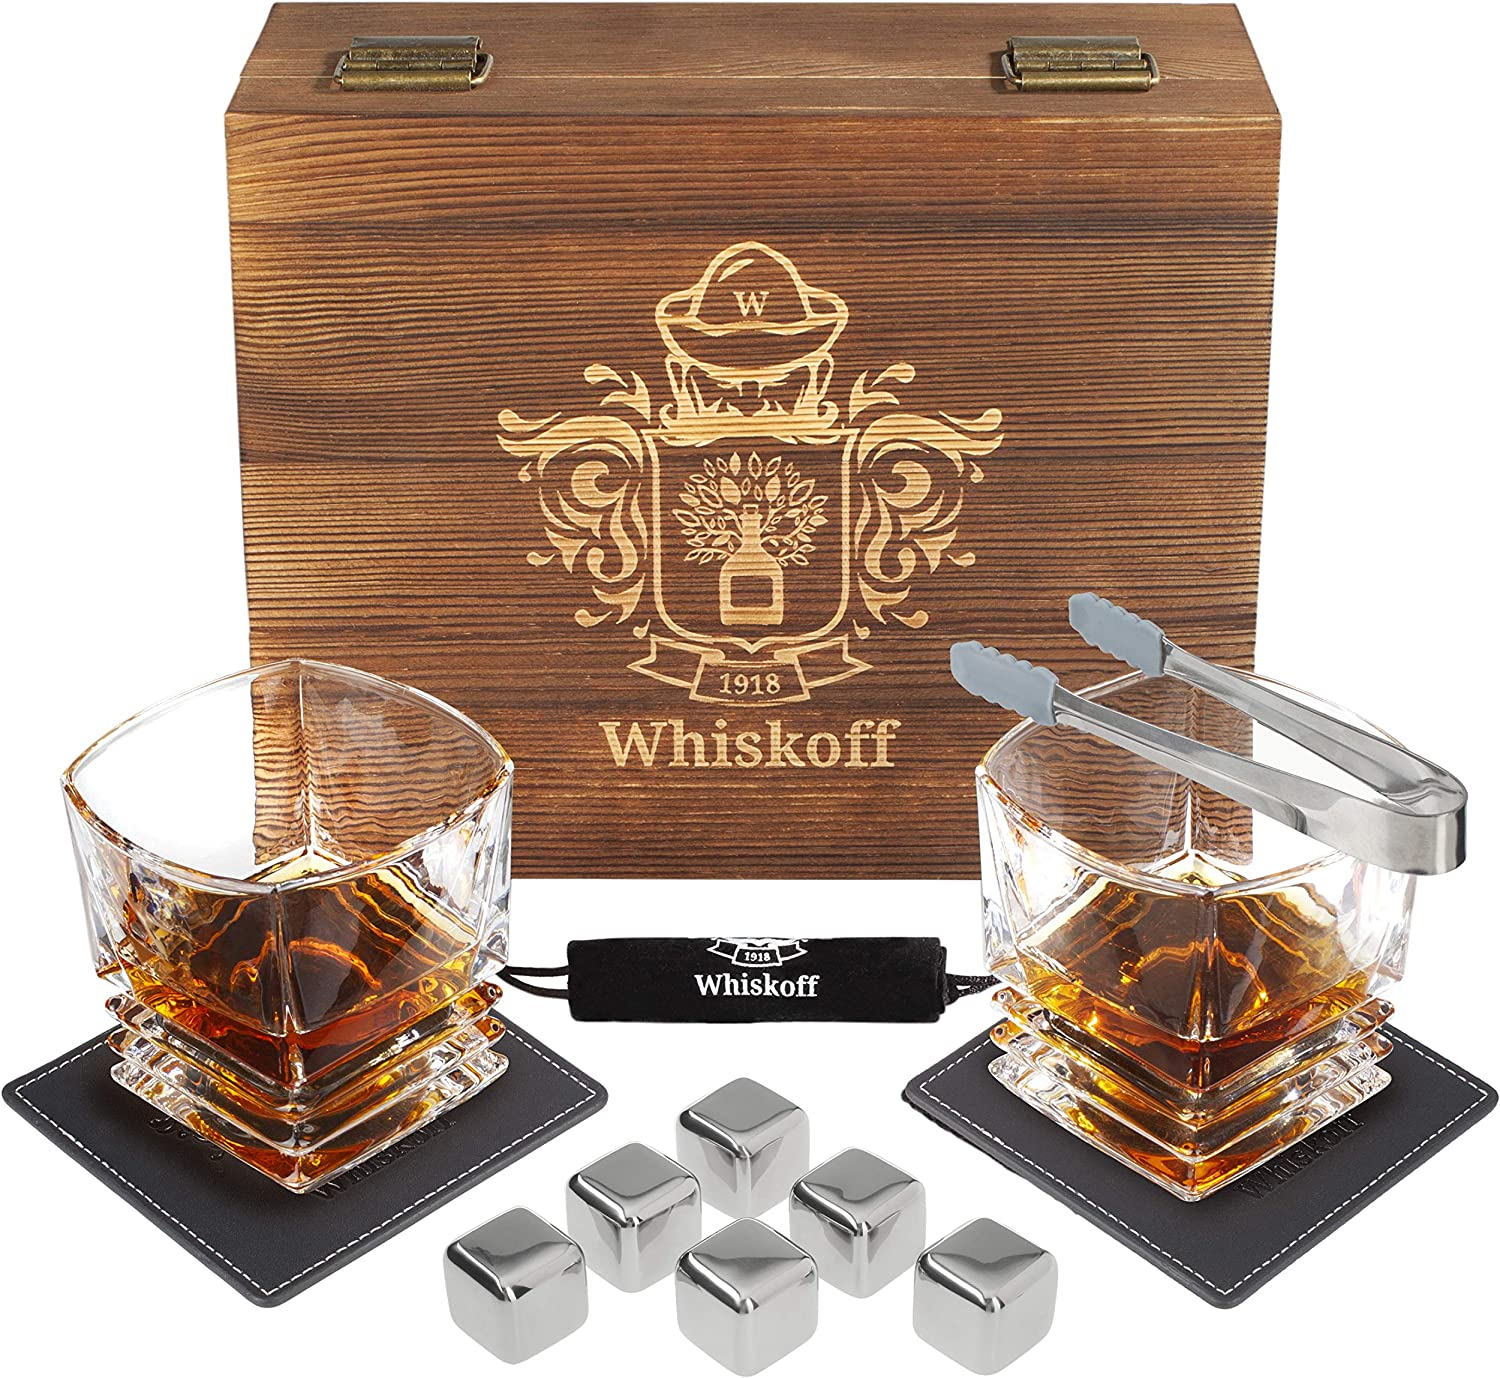 Whiskey Glasses Set - 6 Stainless Steel Reusable Ice Cubes - Whisky Gifts for Men - Scotch Bourbon Glasses Set - Whisky Chilling Metal Cubes in Wooden Box - Bourbon Gifts for Men - Gift for Him